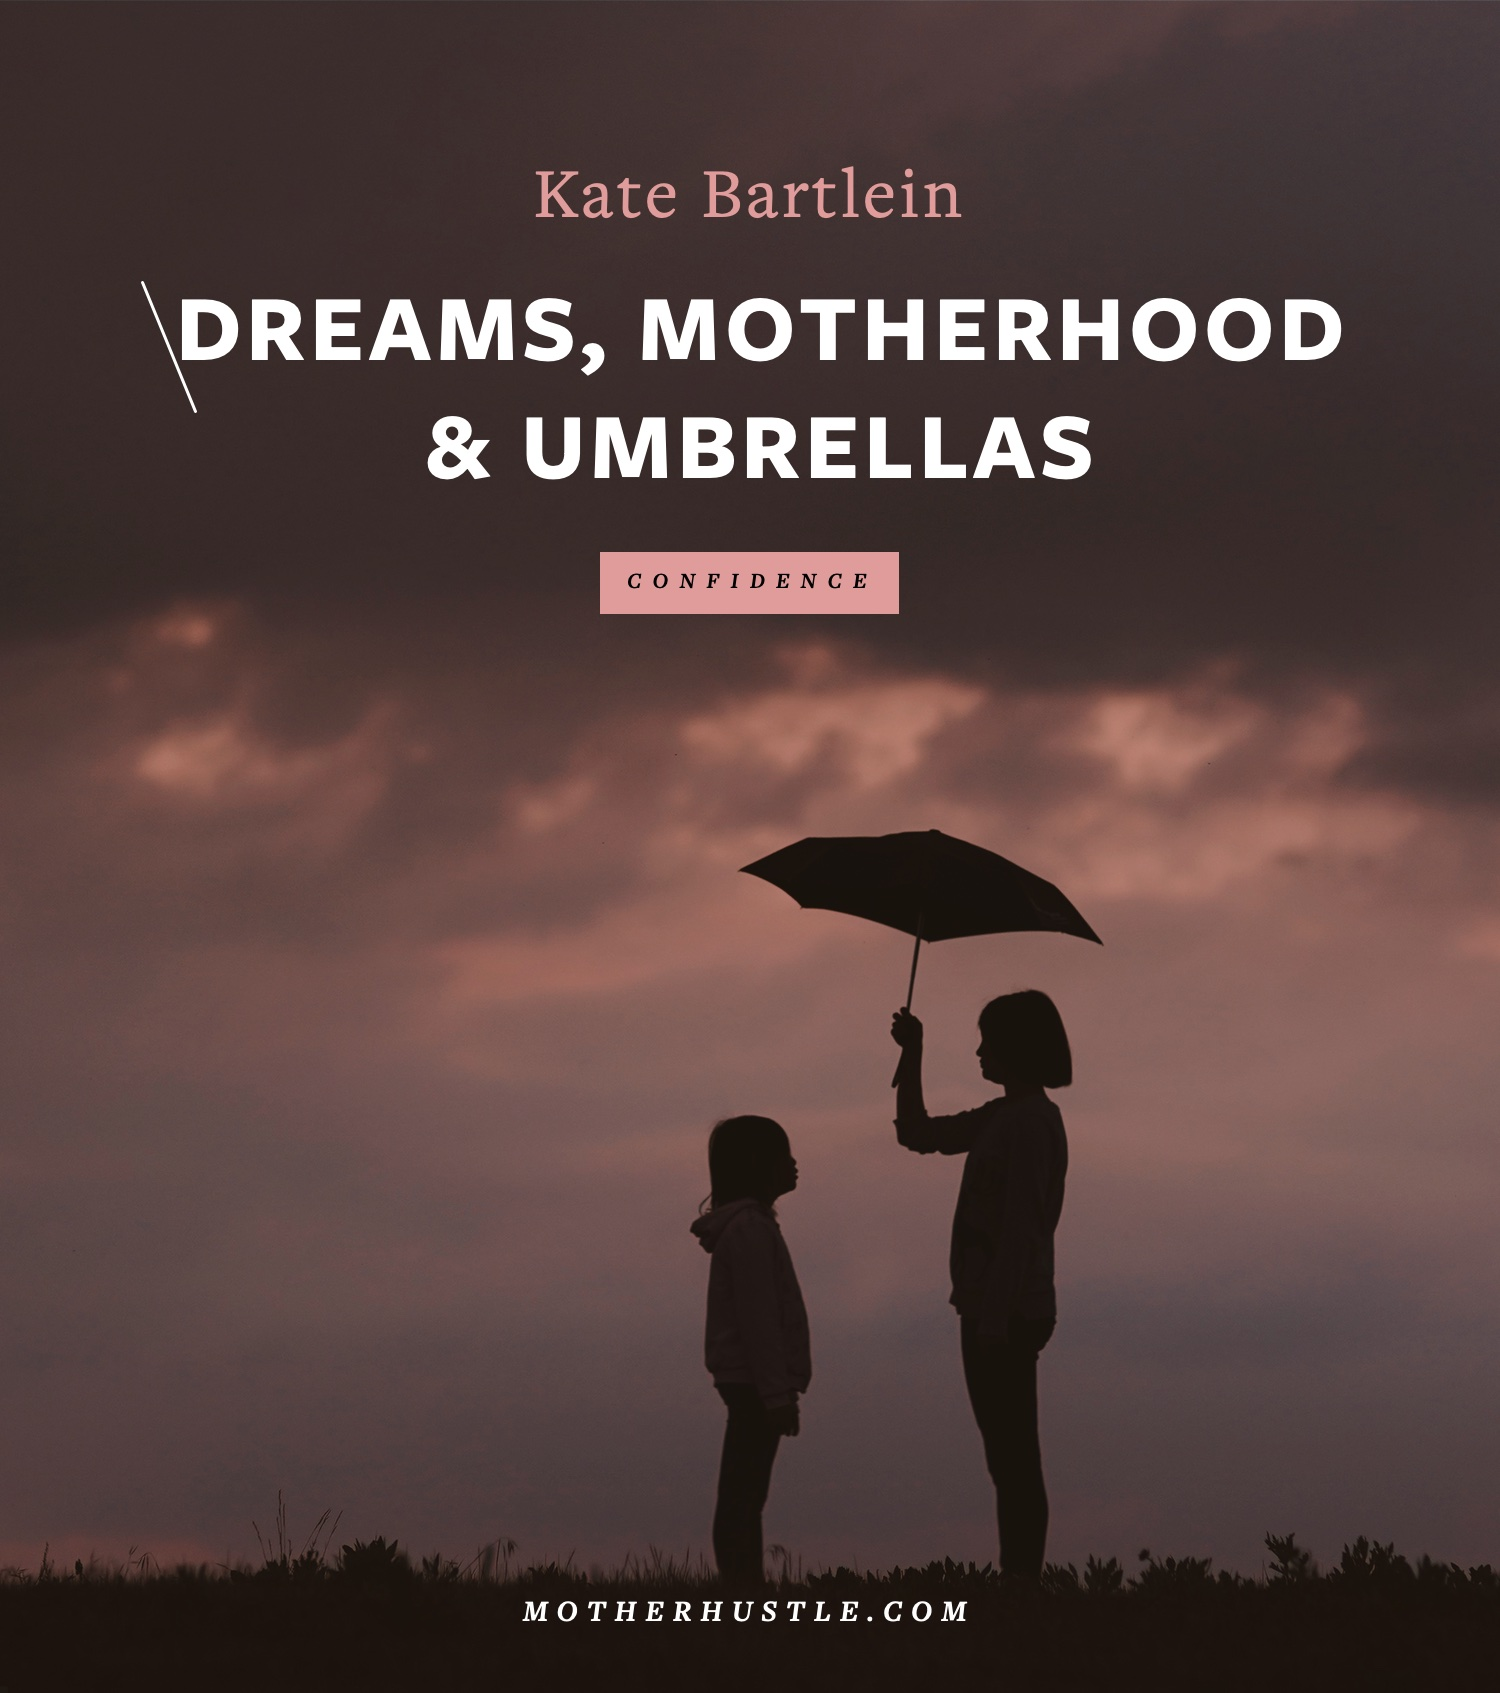 Dreams, Motherhood & Umbrella - by Kate Bartlein for MotherHustle